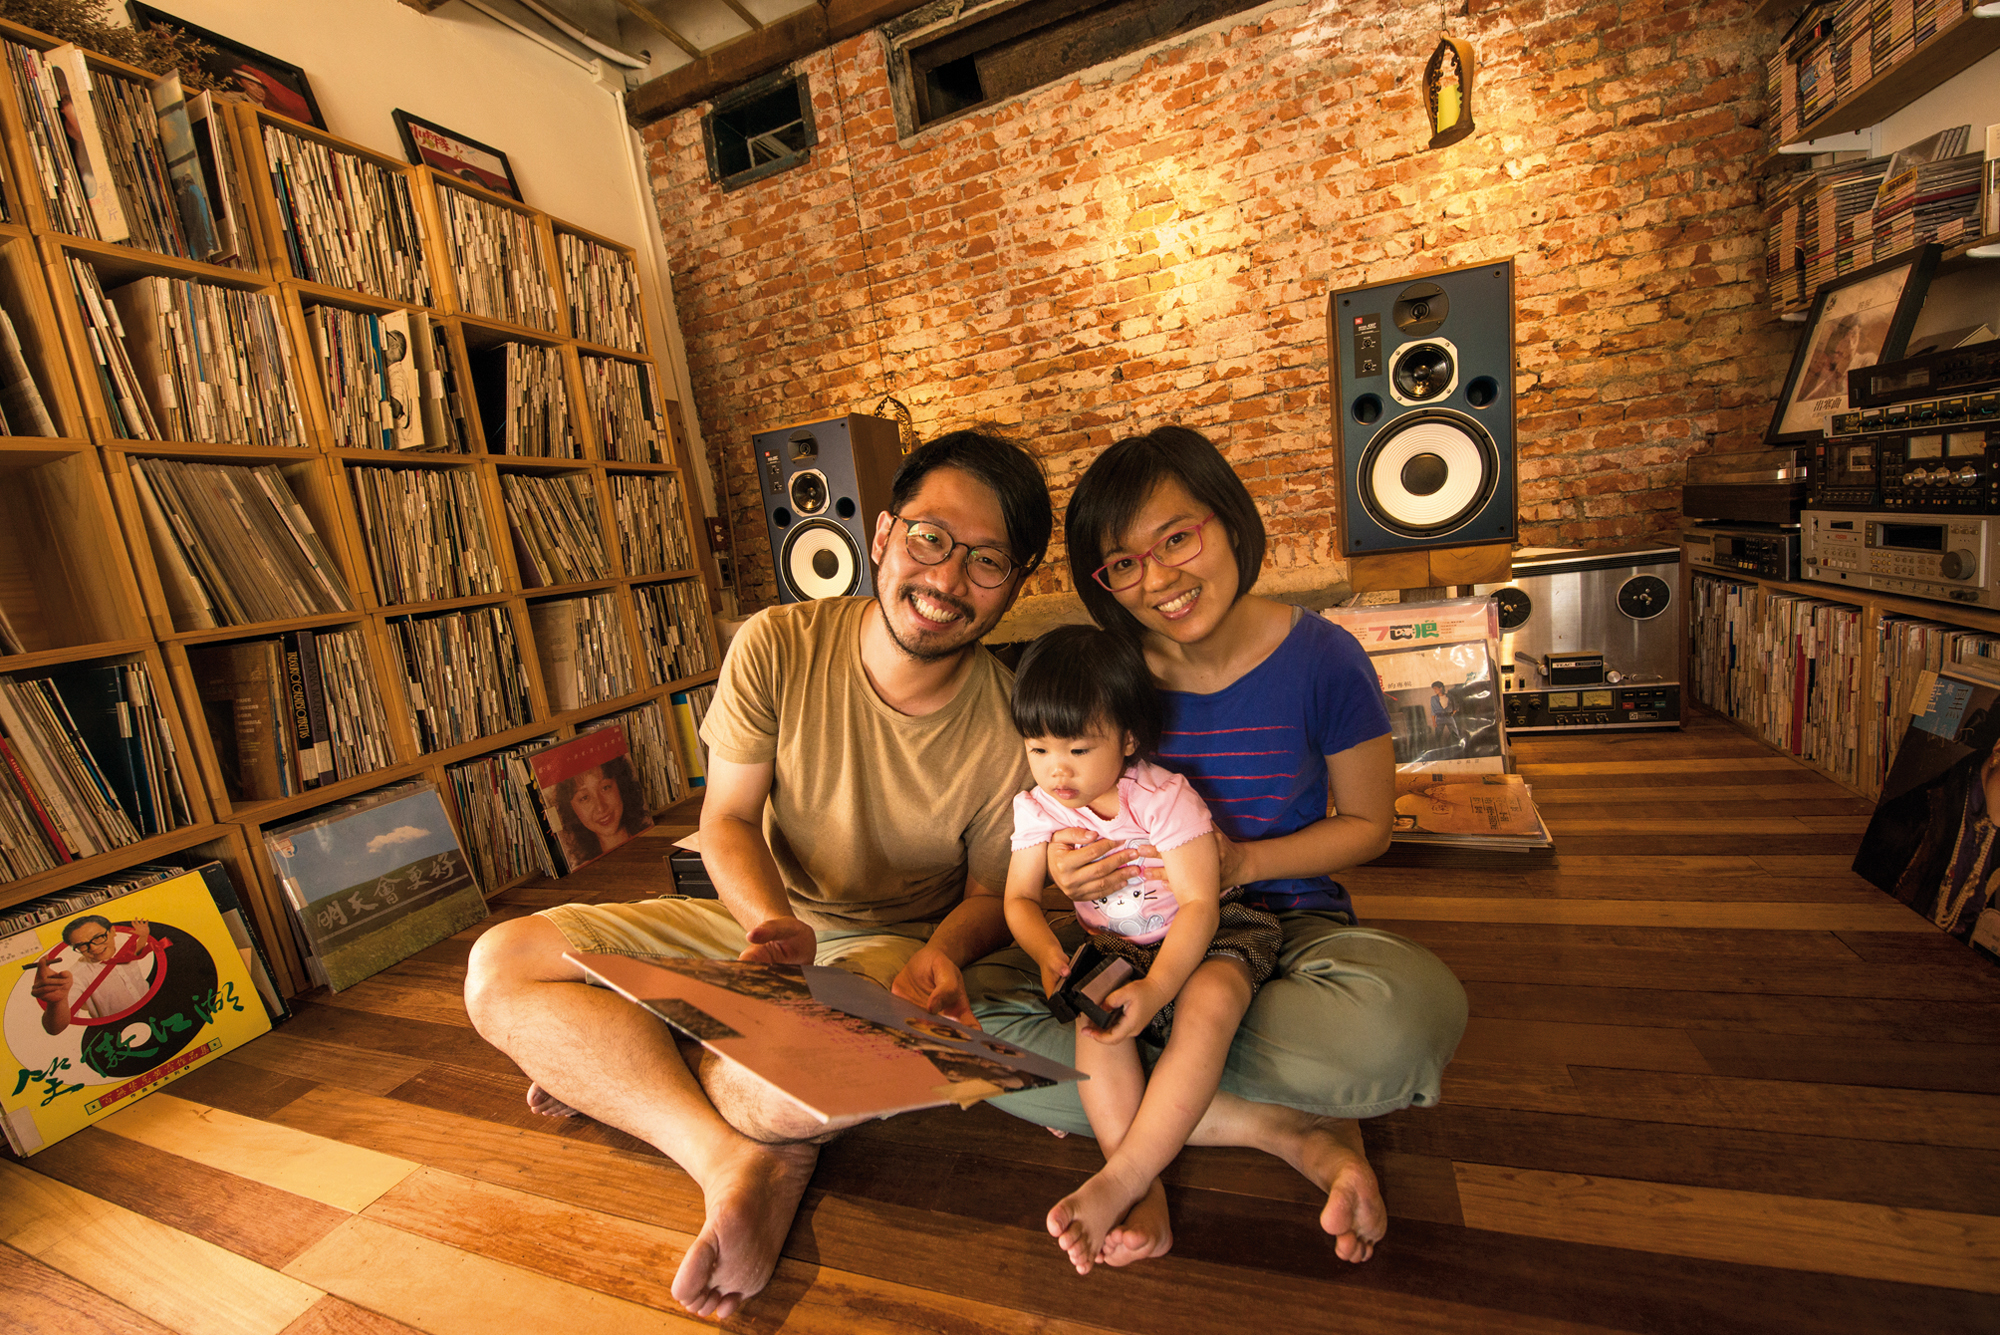 Domongo Chung left his old job to head back to his hometown with his wife and daughter and lead a cozy life surrounded by vinyl records.